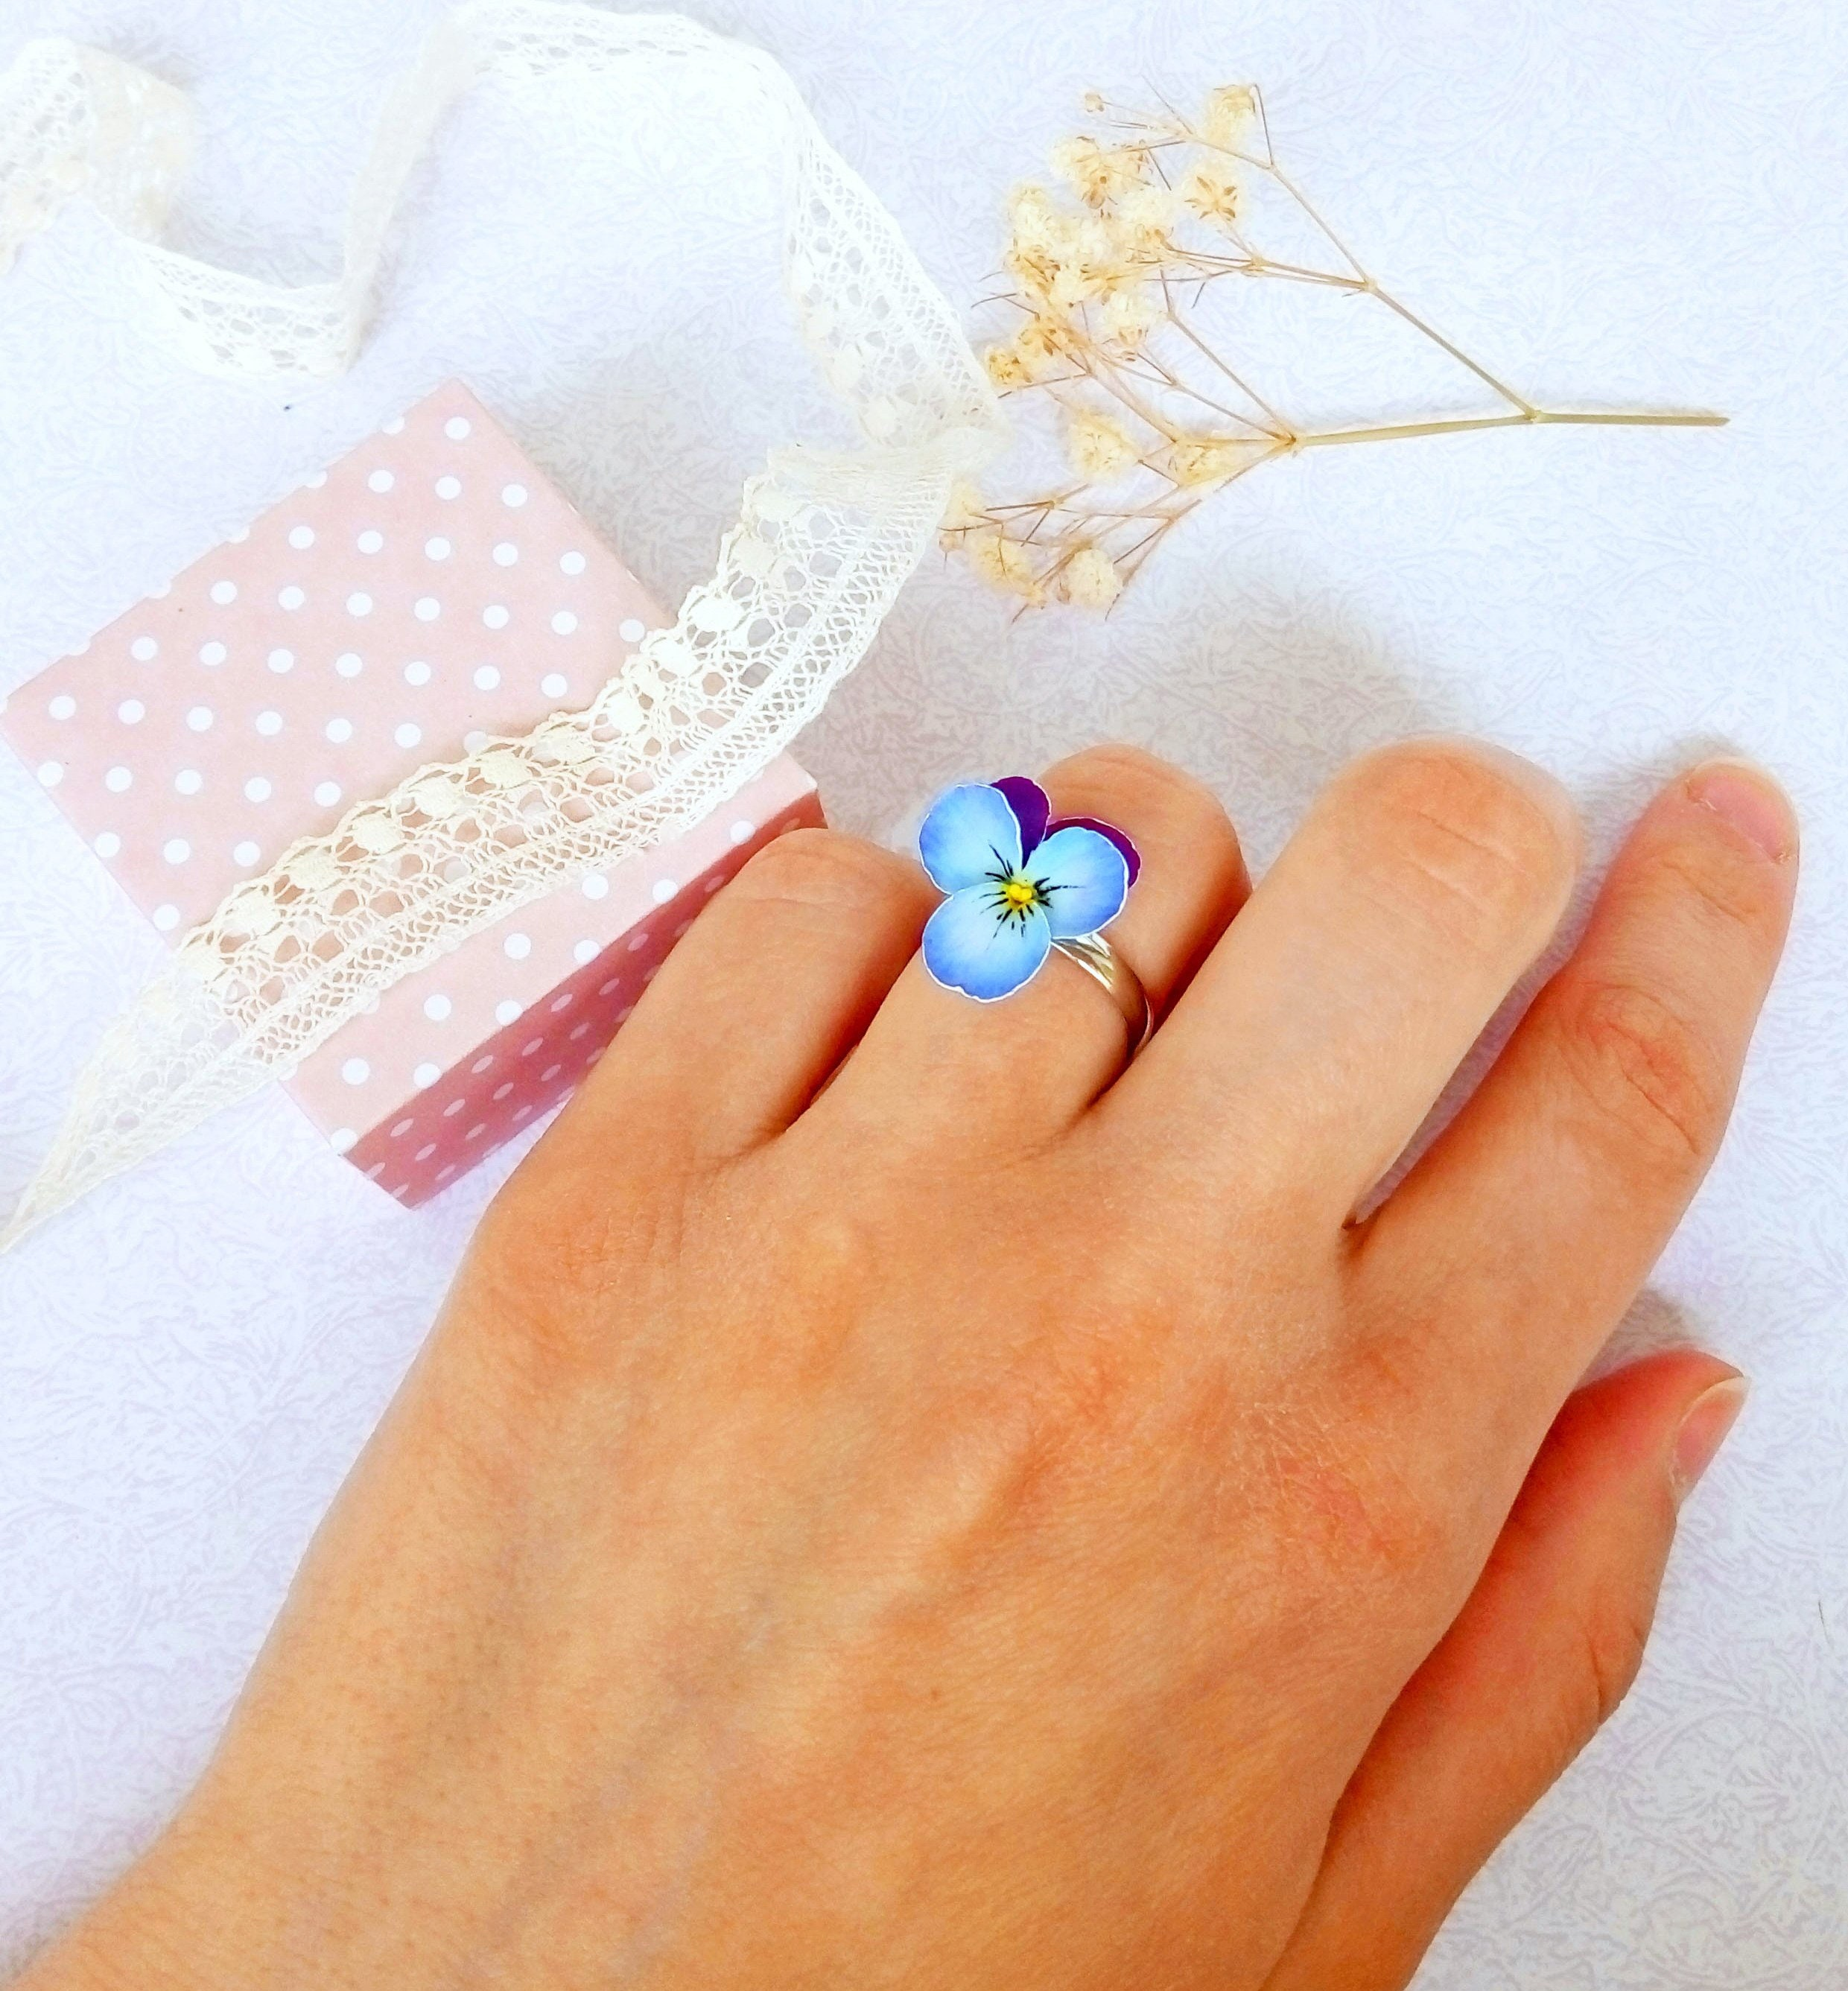 CWI Gifts FB81604 Artificial Mixed Pansy Ring 4 Multicolored